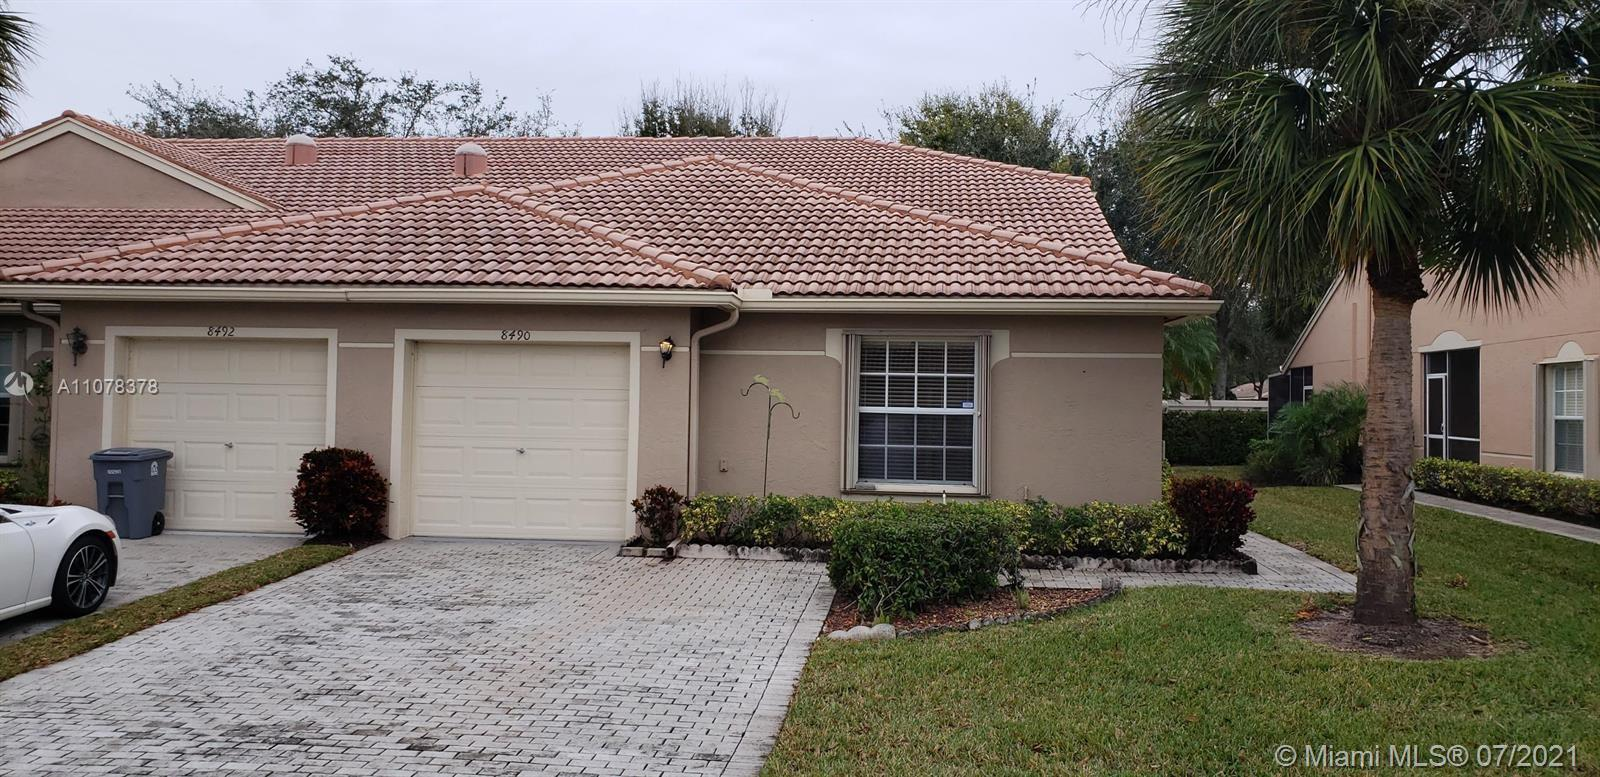 GOLDEN OPPORTUNITY TO OWN THIS 3/2 DARLING BEDROOM CORNR VILLA IN VENETIAN ISLES IN THE HEART OF BOY